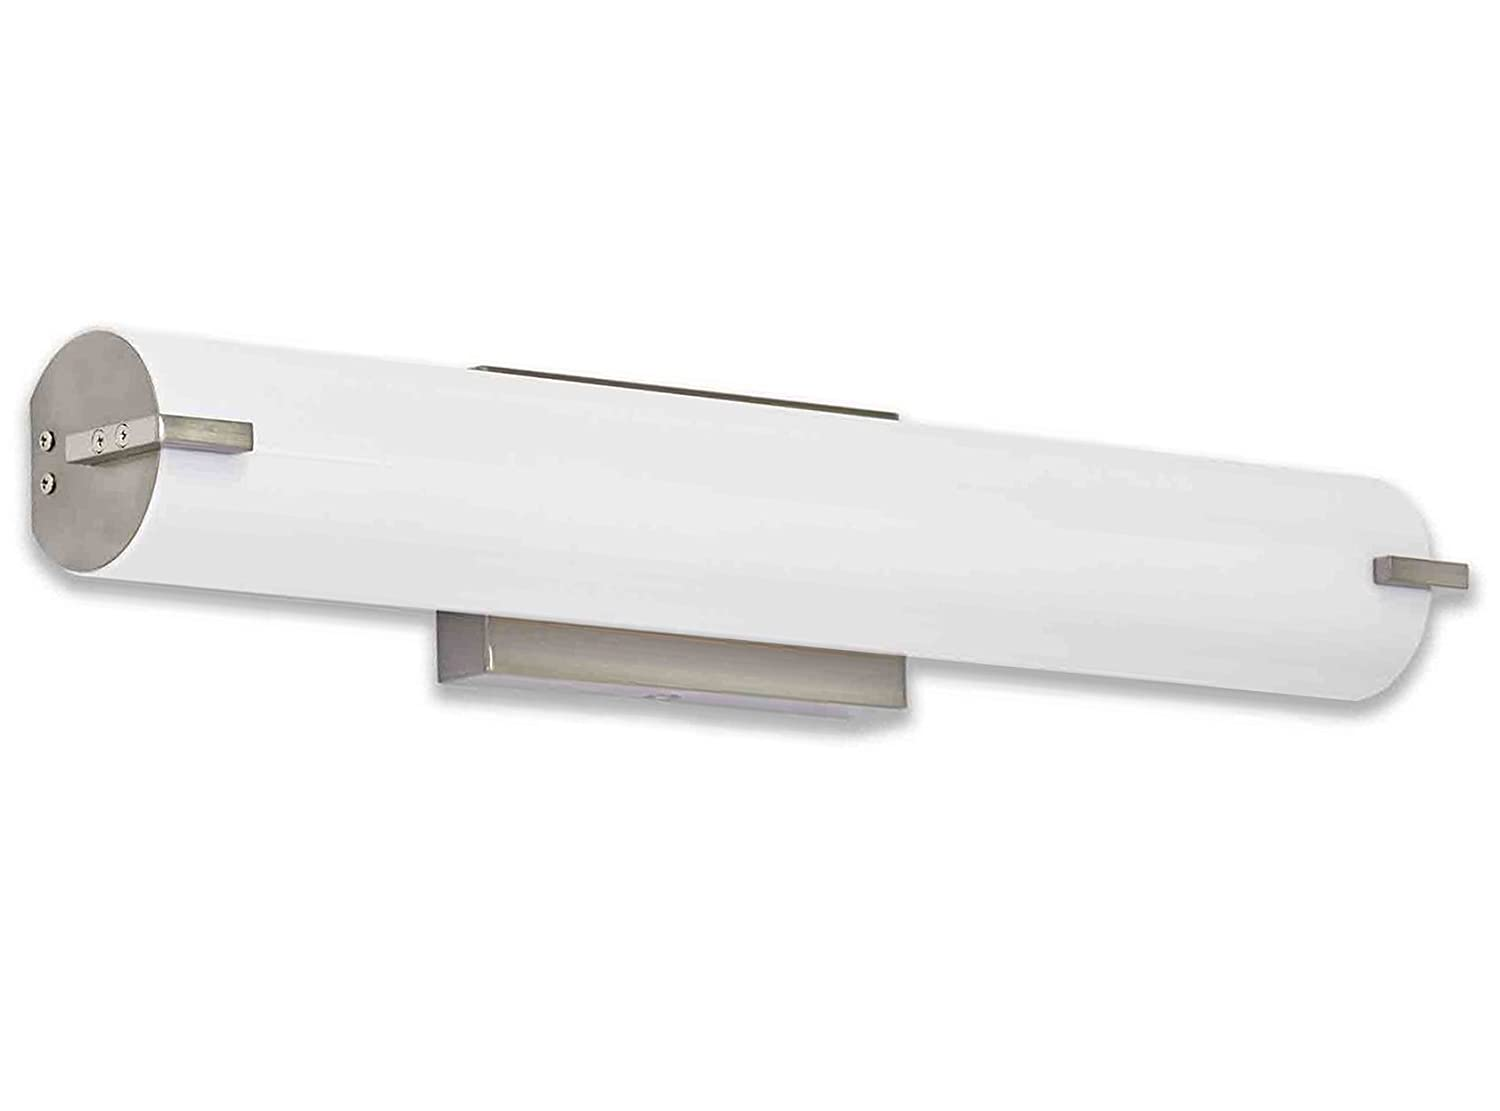 NEW Modern Frosted Bathroom Vanity Light Fixture | Contemporary Sleek  Dimmable LED Cylinder Bar Design | Vertical Or Horizontal Tube With Brushed  Nickel ...